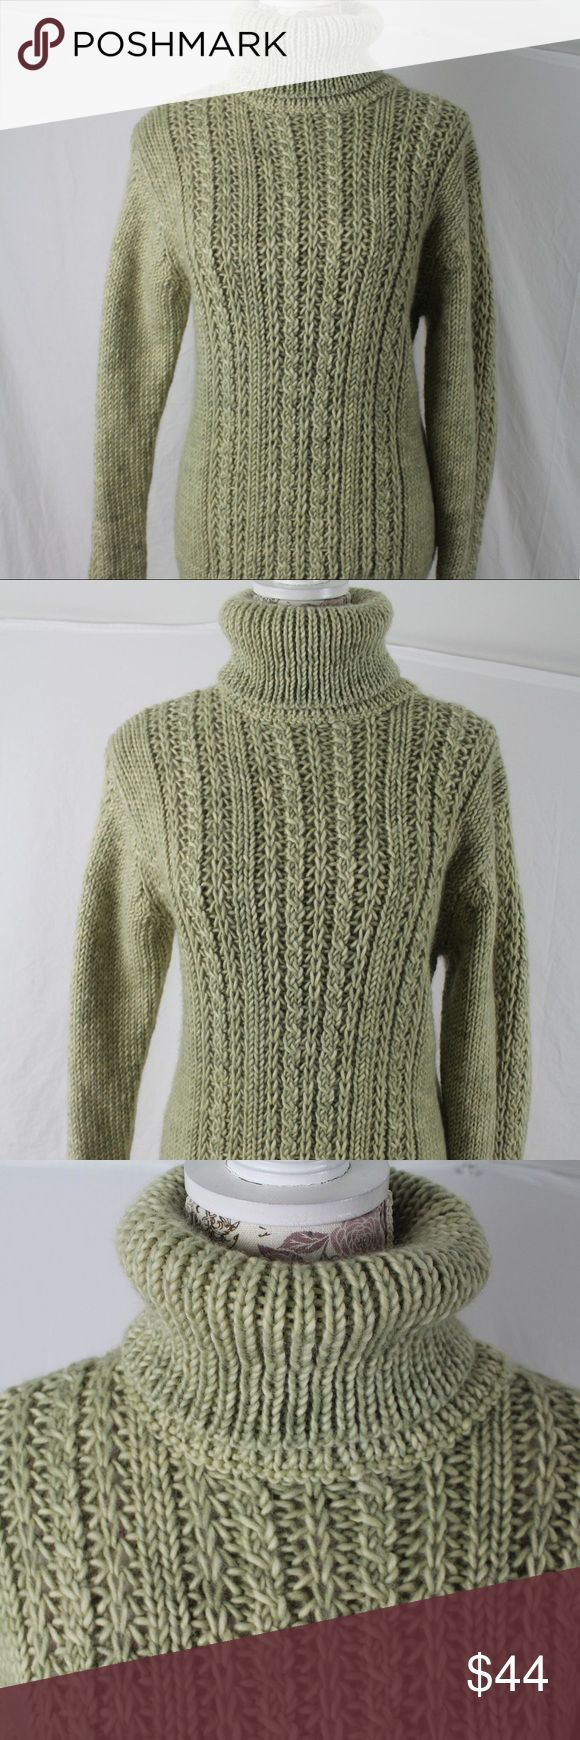 """Timberland Green Wool CableKnit Turtleneck Sweater This is a Timberland 100% Italian wool Cableknit turtleneck pullover sweater (UK jumper) in size Medium. Made in Italy. When flat on front side, shoulder seam to shoulder seam measures 18"""" across, underarm to underarm 19"""", waist 18"""". Total length is 26.5"""".  Sleeve length when measured from top of shoulder seam down to end of cuff is 25"""". A fine piece of quality work. One of those pieces meant to last a lifetime. Pre-owned in UNWORN…"""